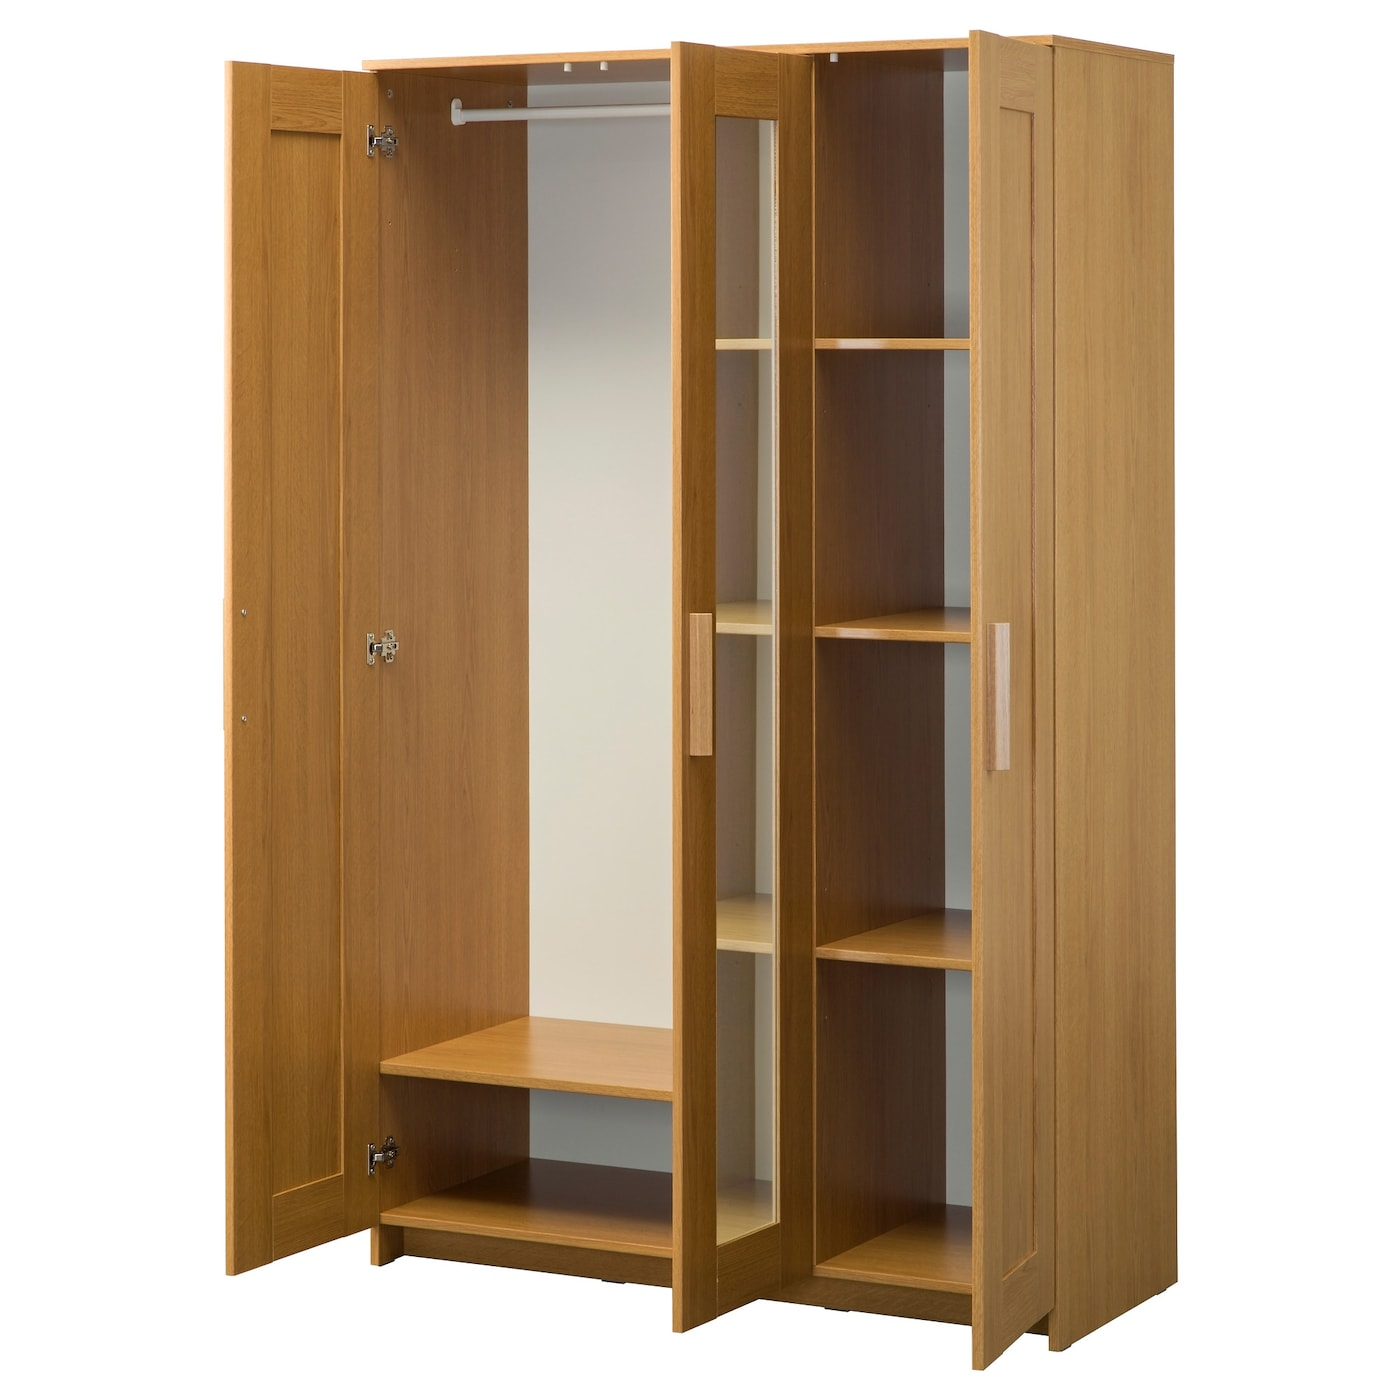 brimnes wardrobe with 3 doors oak effect 117 x 190 cm ikea. Black Bedroom Furniture Sets. Home Design Ideas